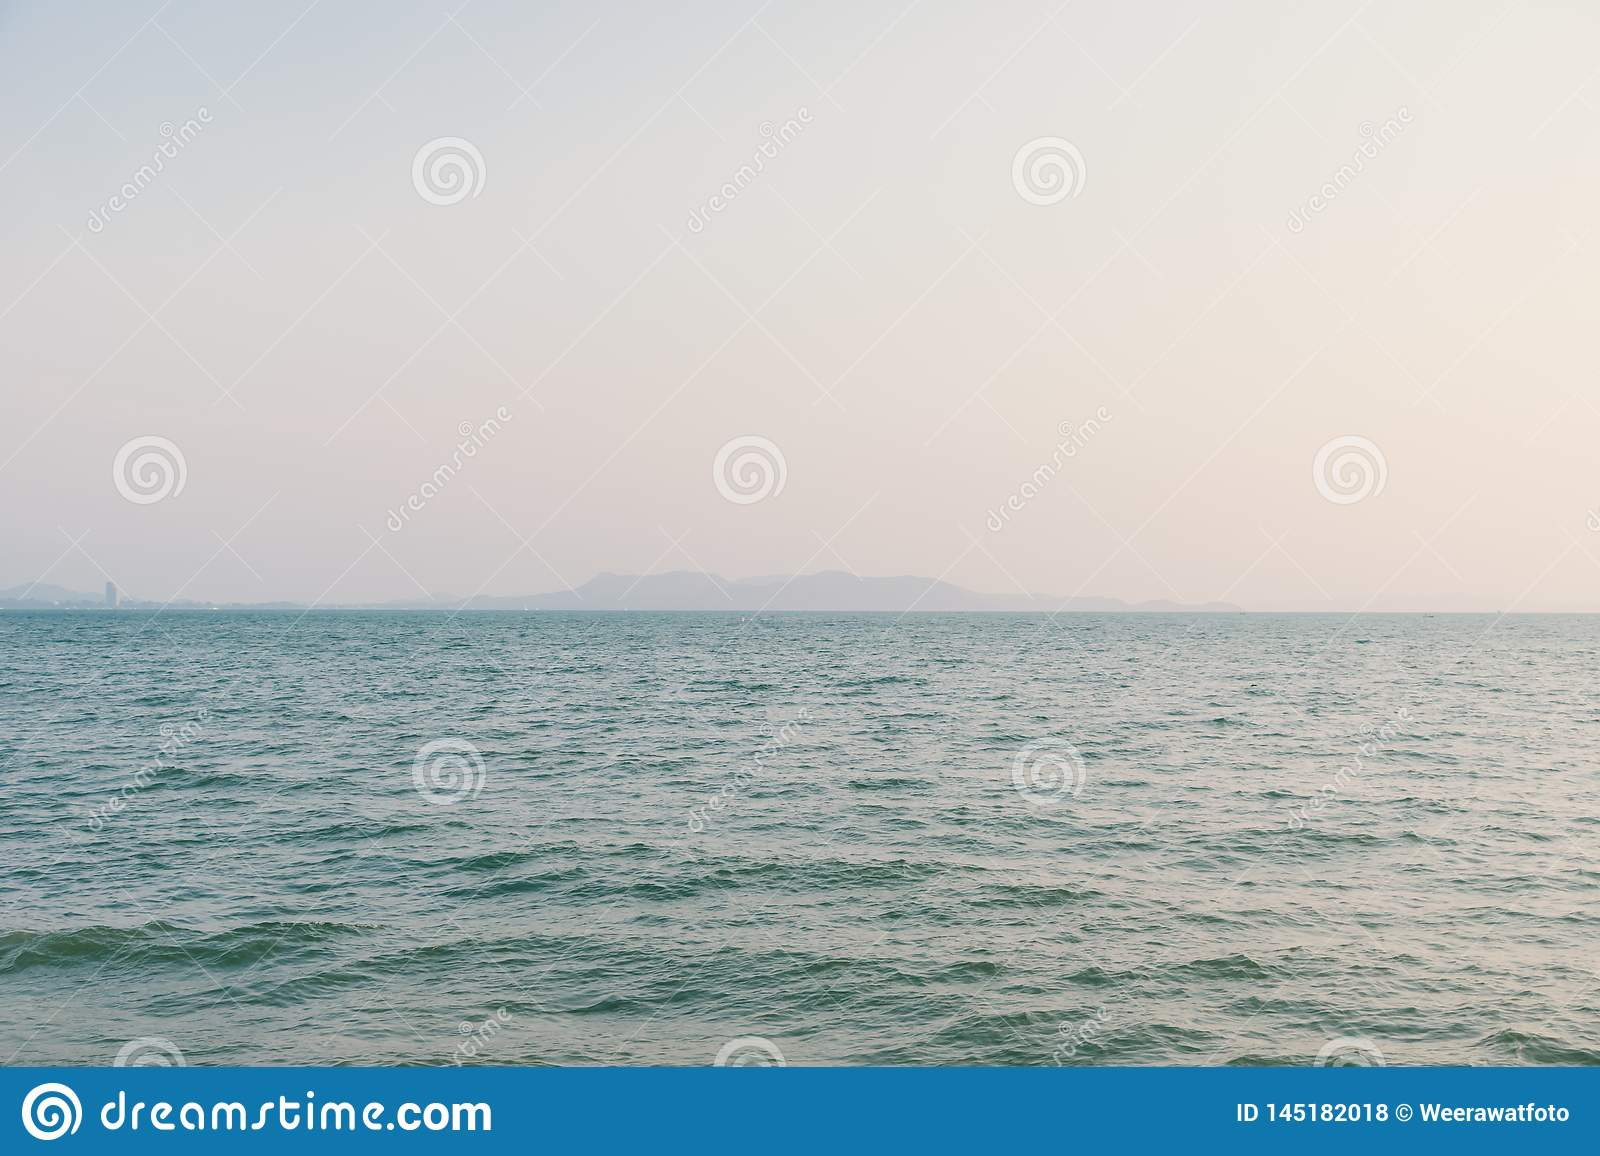 Romantic summertime seascape with crystal clear sea